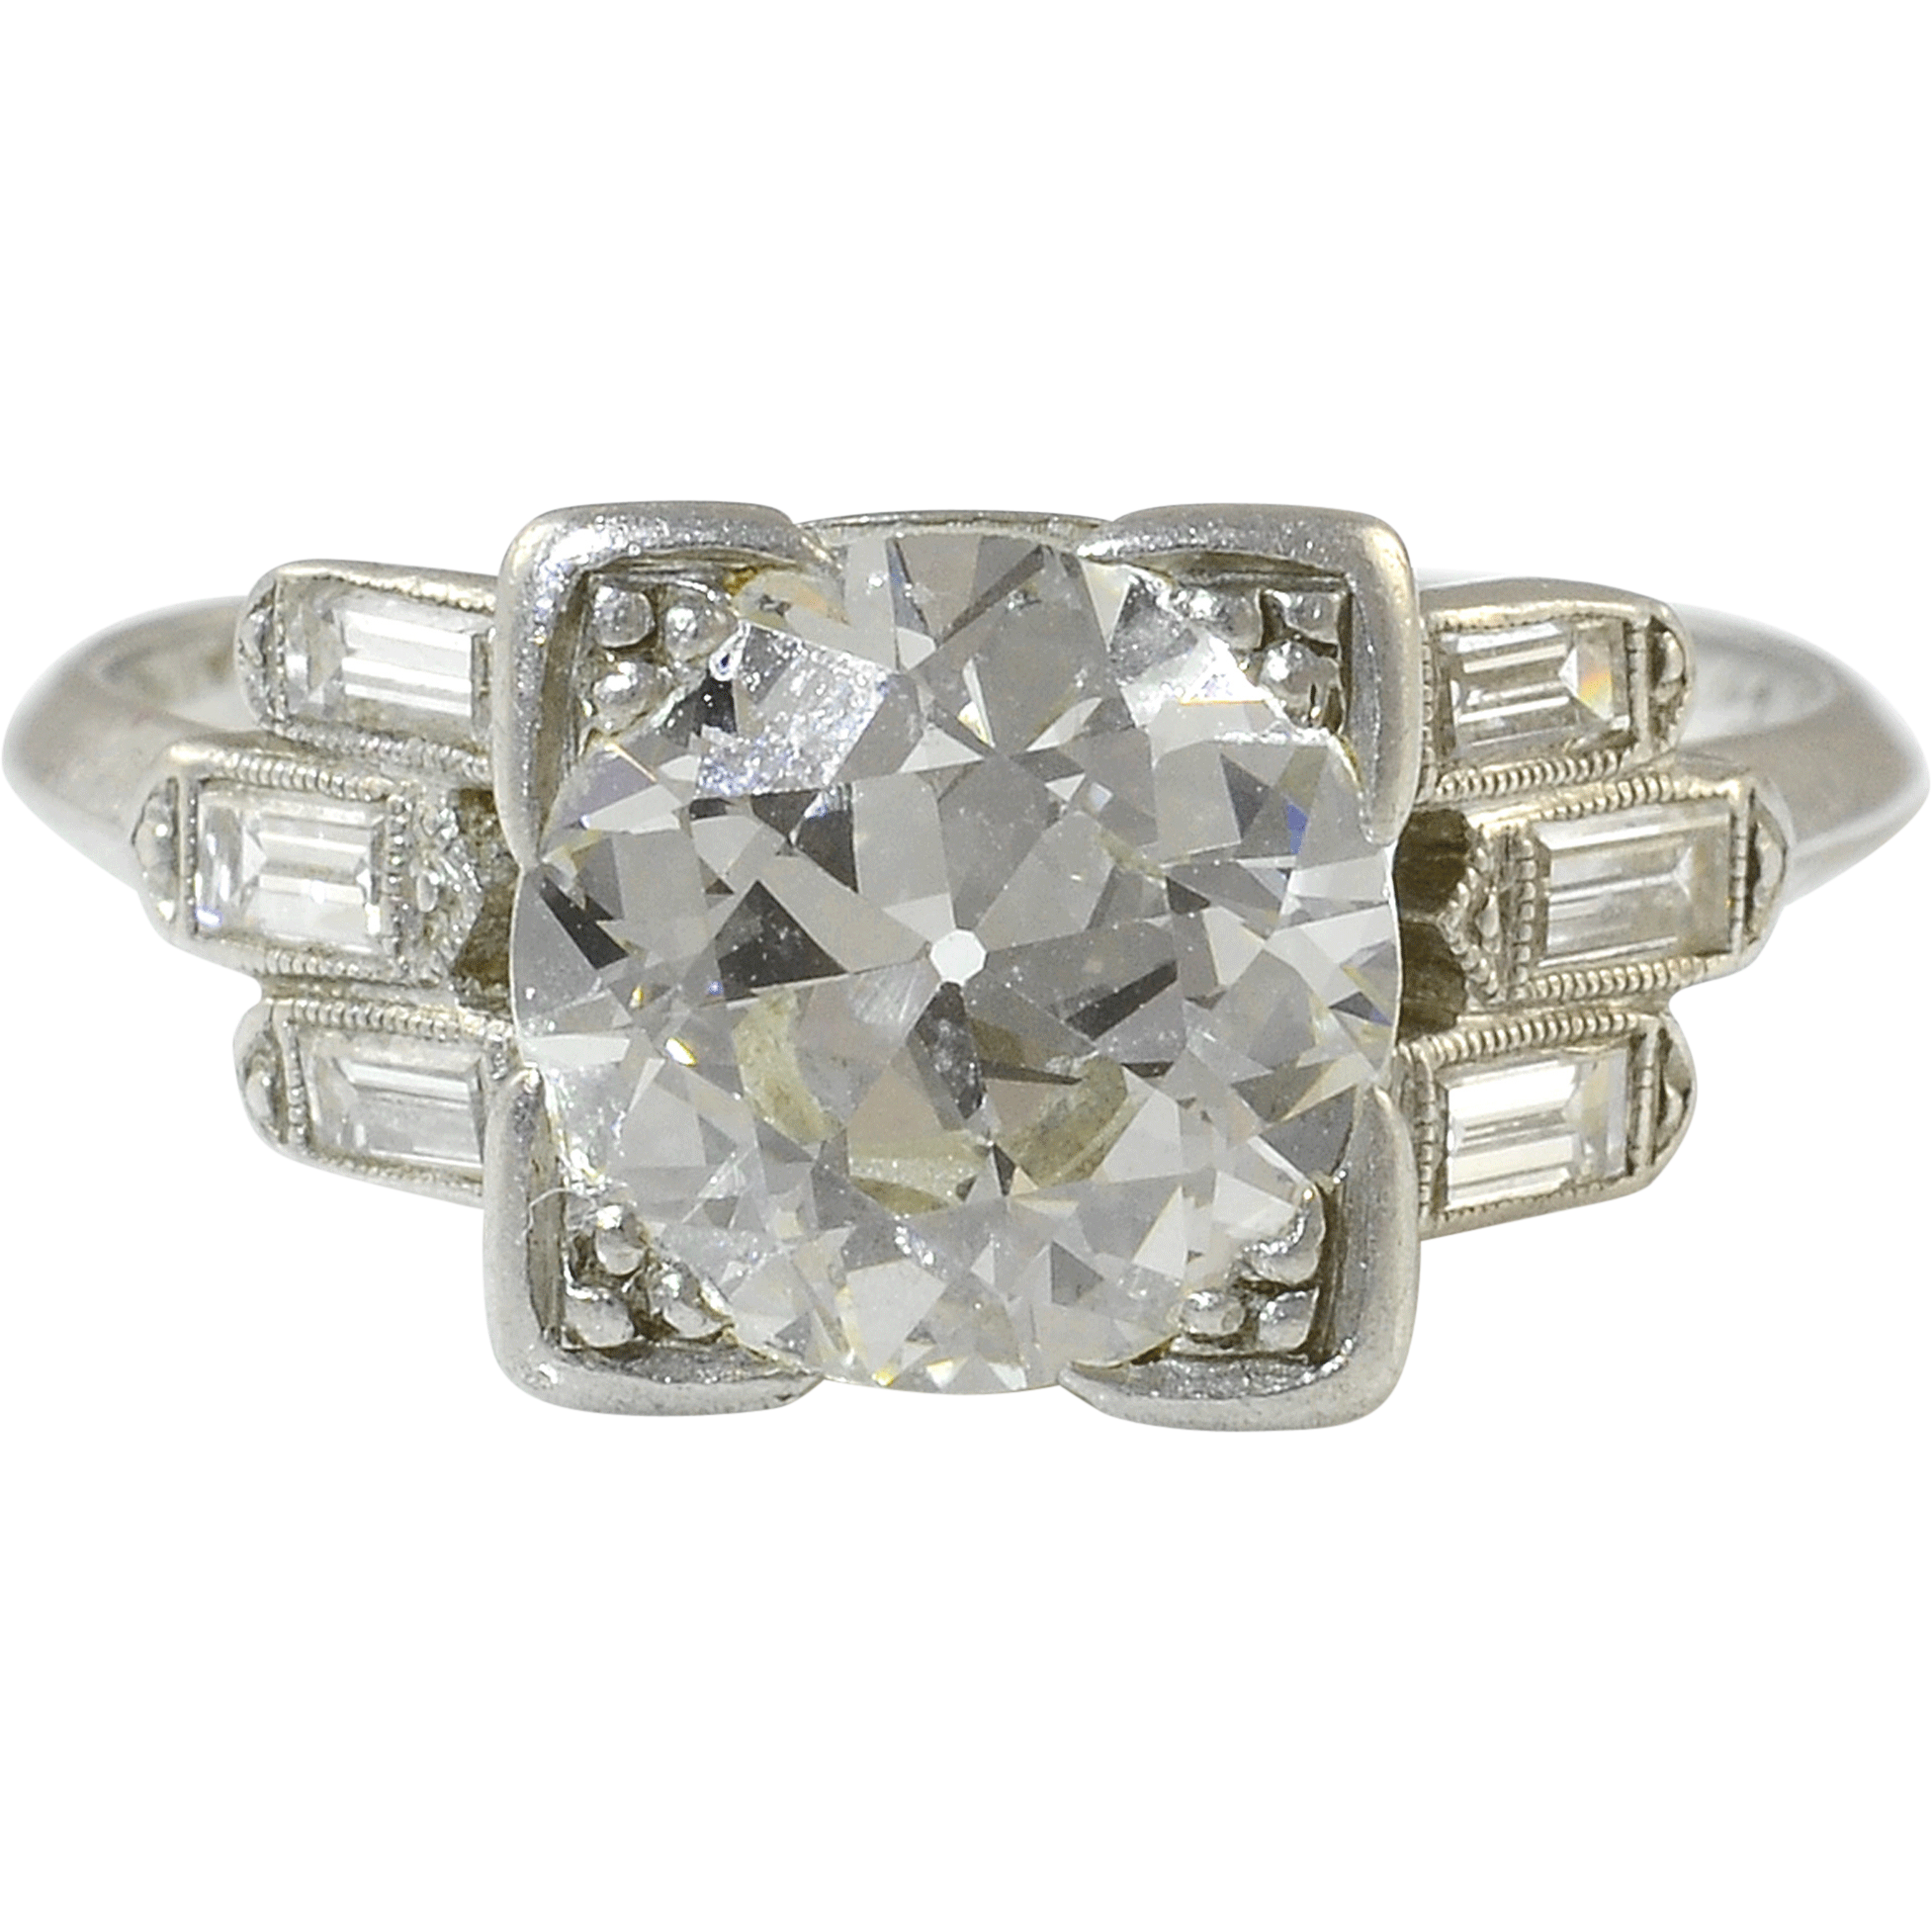 Platinum Art Deco VVS2 2.36 Carat Center Diamond Ring